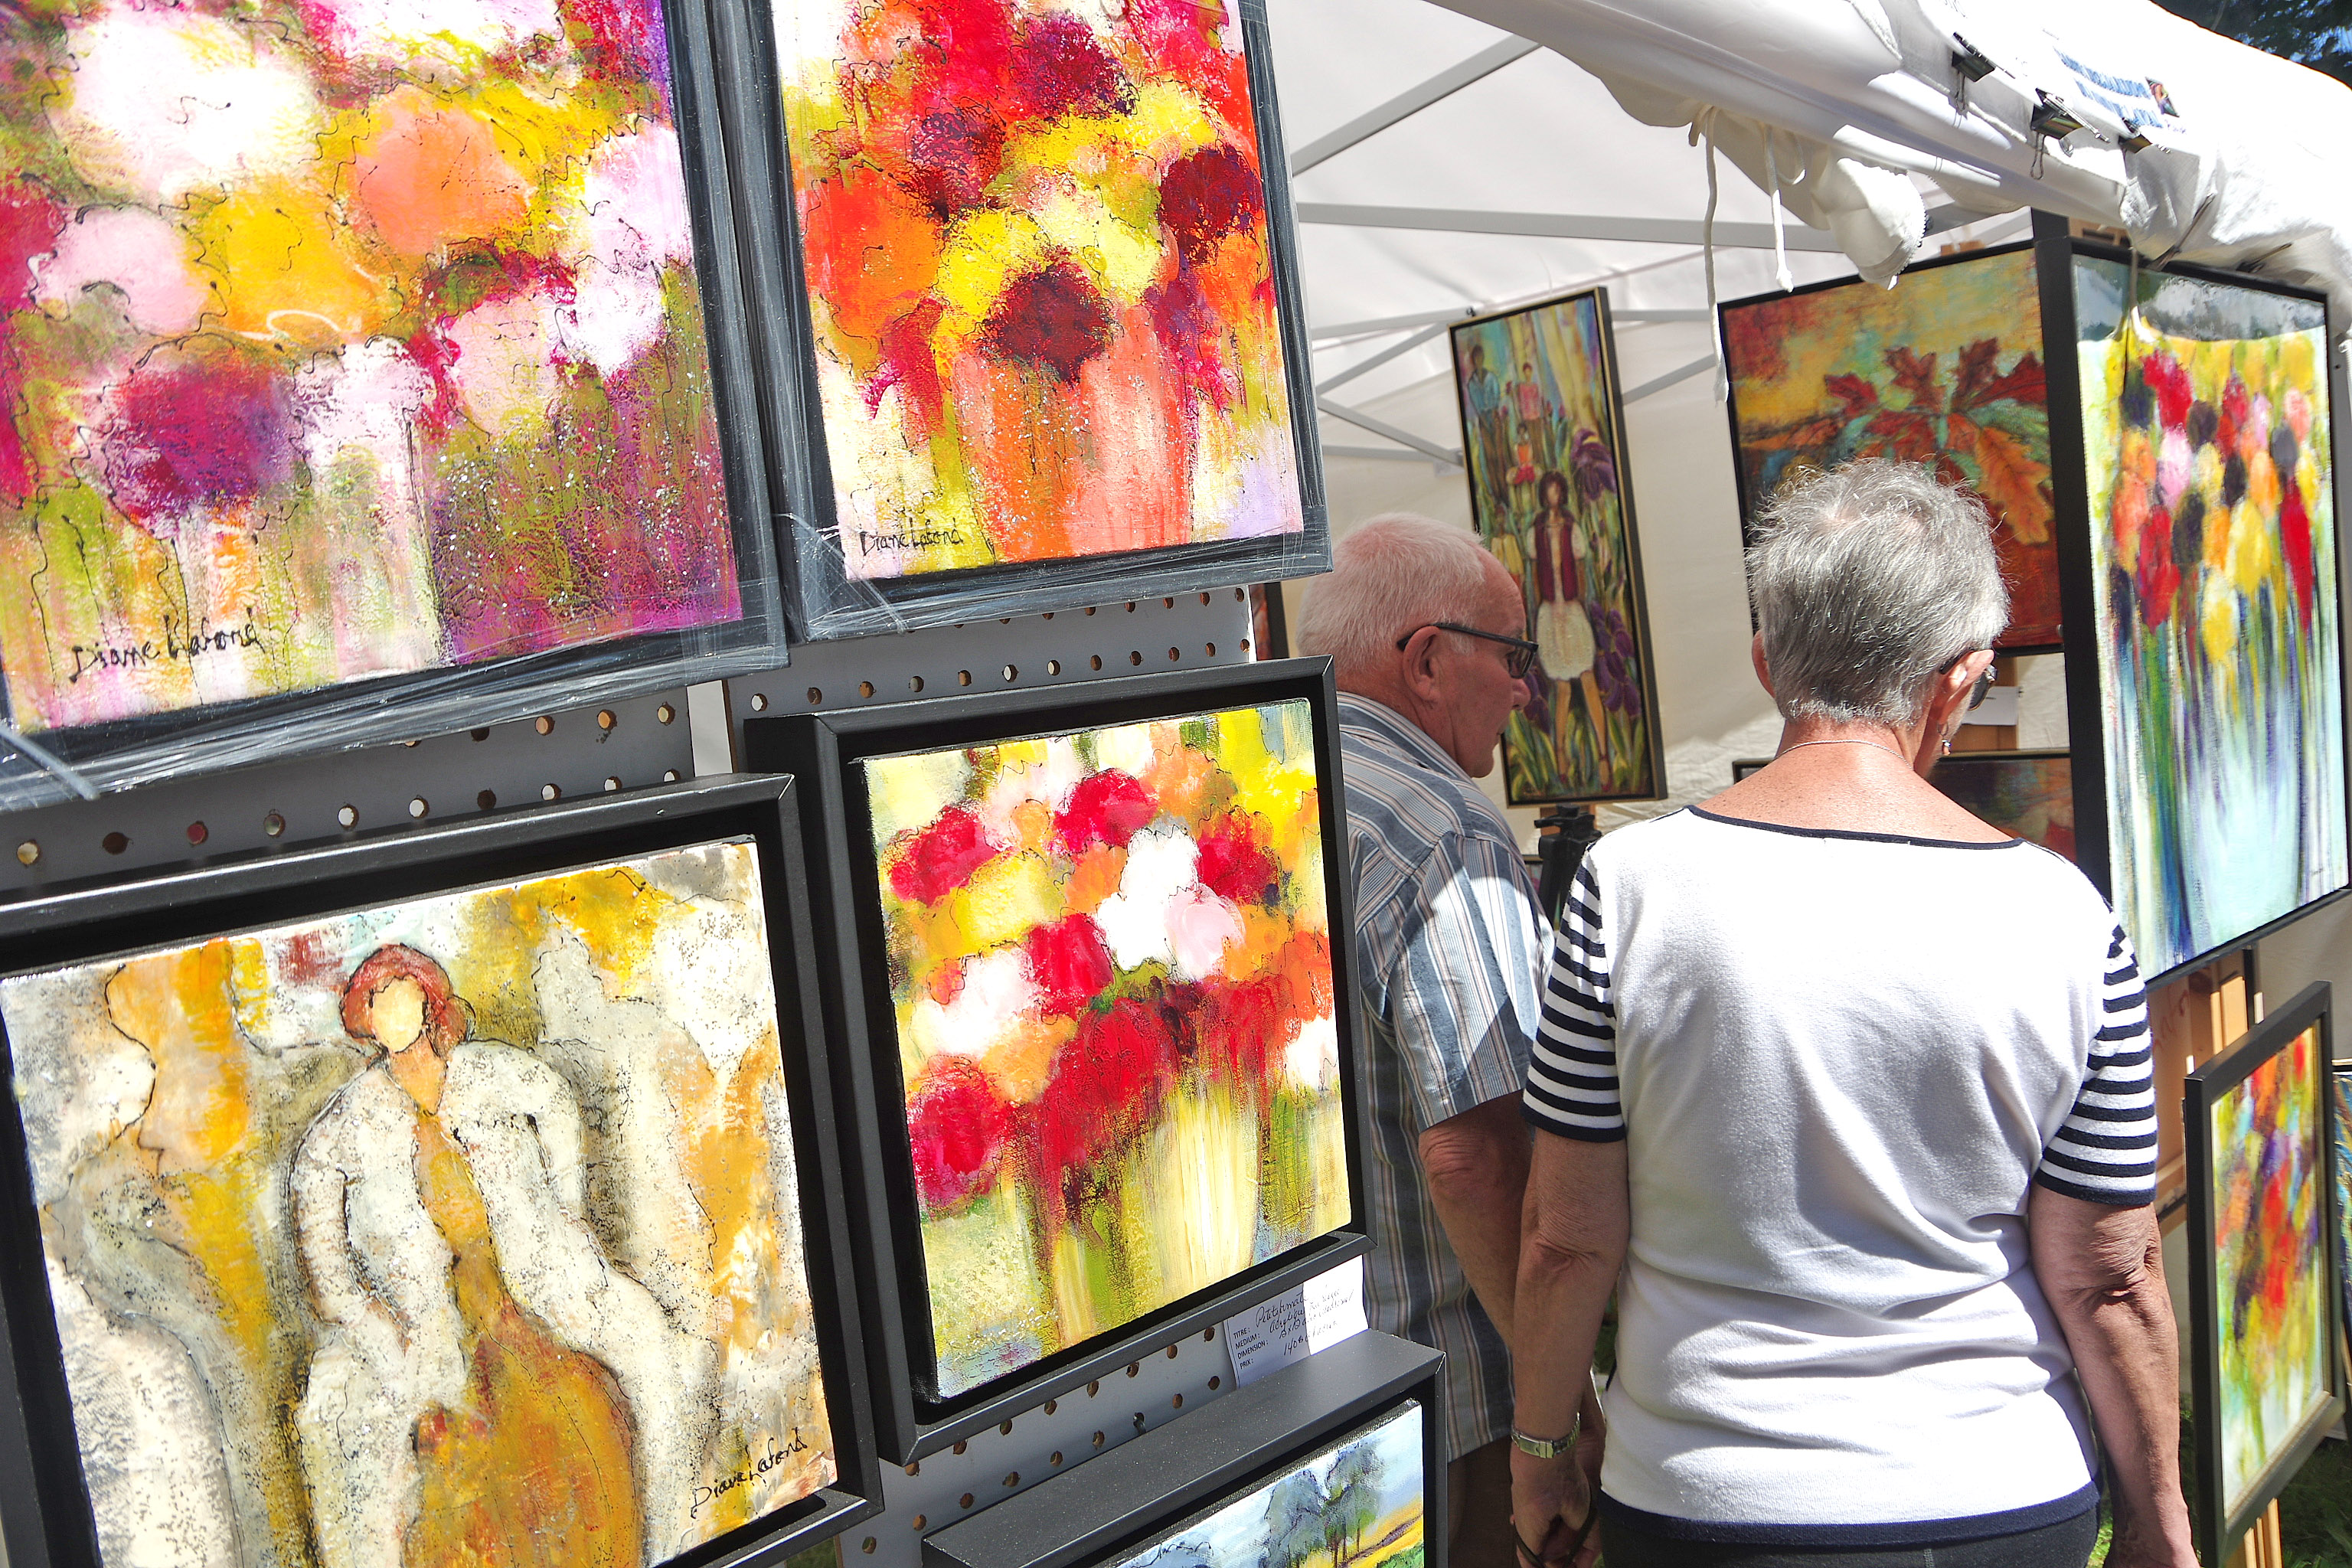 Hundreds of artworks were on display during the three days of the event.